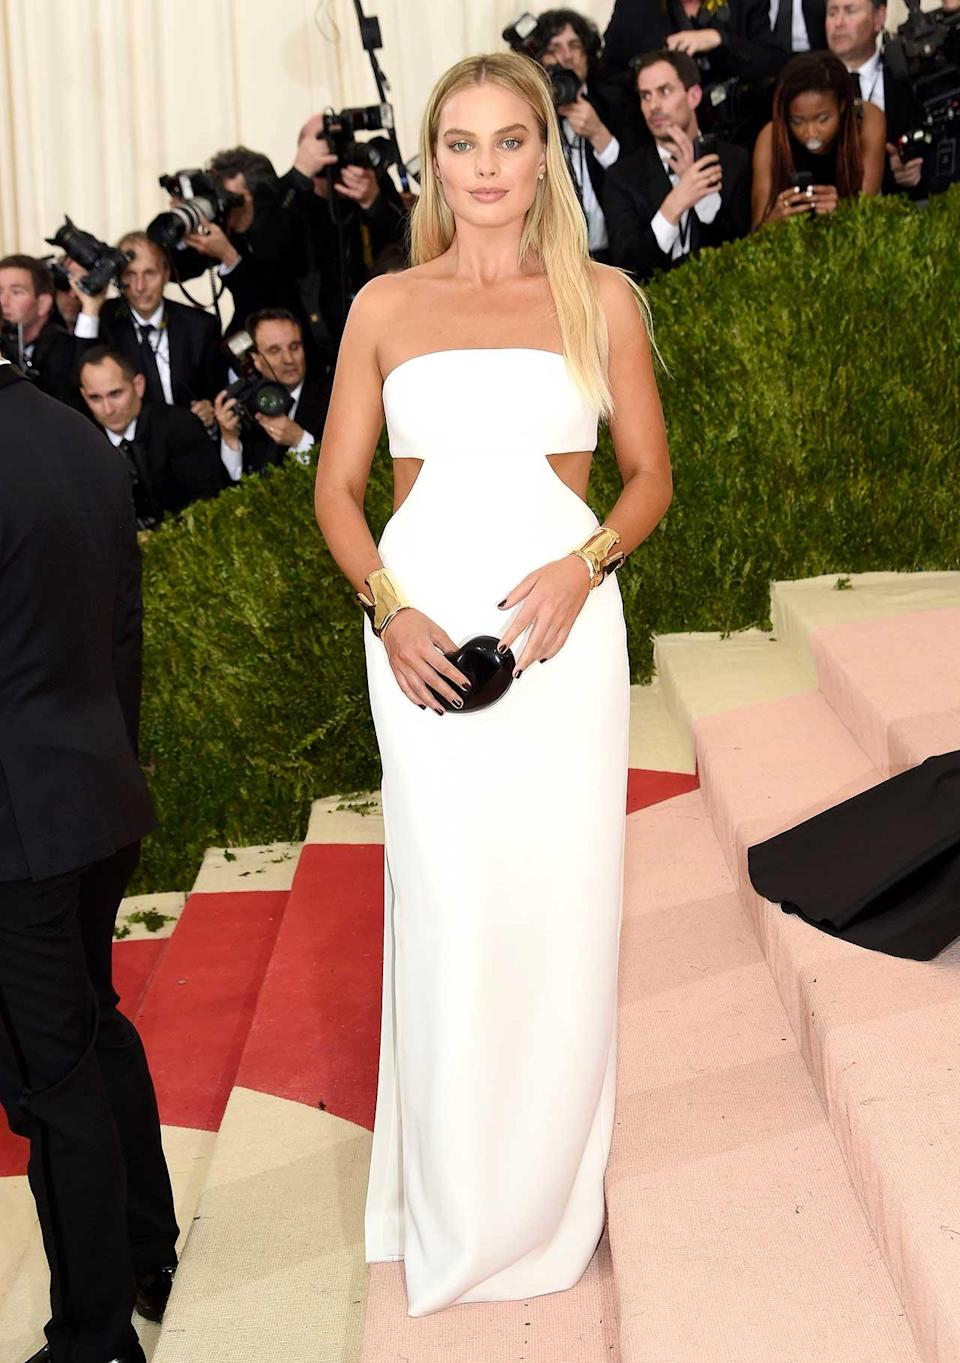 """<h2>In Calvin Klein</h2> <p>At the Met Gala in New York City, 2016</p> <h4>Getty Images</h4> <p> <strong>Related Articles</strong> <ul> <li><a rel=""""nofollow noopener"""" href=""""http://thezoereport.com/fashion/style-tips/box-of-style-ways-to-wear-cape-trend/?utm_source=yahoo&utm_medium=syndication"""" target=""""_blank"""" data-ylk=""""slk:The Key Styling Piece Your Wardrobe Needs"""" class=""""link rapid-noclick-resp"""">The Key Styling Piece Your Wardrobe Needs</a></li><li><a rel=""""nofollow noopener"""" href=""""http://thezoereport.com/fashion/shopping/everything-need-let-zoe-giveaway/?utm_source=yahoo&utm_medium=syndication"""" target=""""_blank"""" data-ylk=""""slk:Everything You Need From Our Let It Zoe Giveaway"""" class=""""link rapid-noclick-resp"""">Everything You Need From Our Let It Zoe Giveaway</a></li><li><a rel=""""nofollow noopener"""" href=""""http://thezoereport.com/beauty/celebrity-beauty/josephine-skriver-makeup-tutorial-video-vogue/?utm_source=yahoo&utm_medium=syndication"""" target=""""_blank"""" data-ylk=""""slk:A Victoria's Secret Model Shows Us How To Get Our Lips To Her Level"""" class=""""link rapid-noclick-resp"""">A Victoria's Secret Model Shows Us How To Get Our Lips To Her Level</a></li> </ul> </p>"""